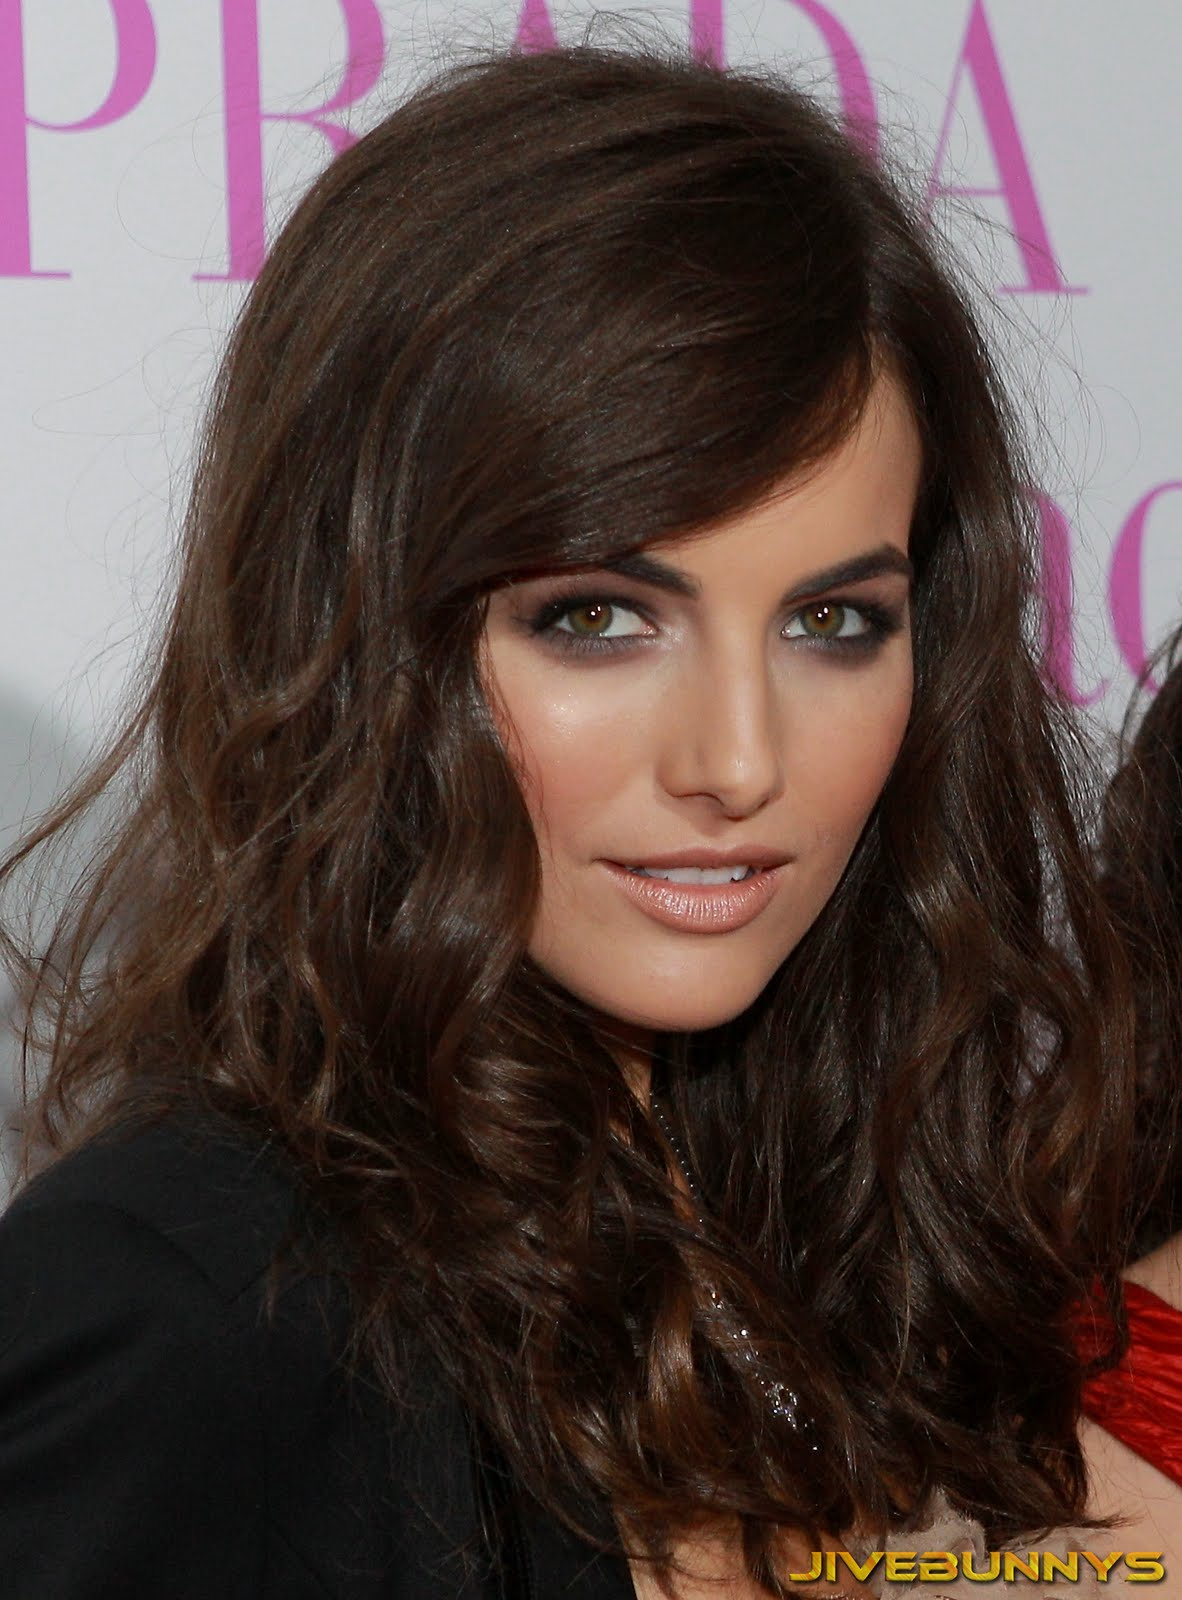 Camilla Belle: Biography And Career